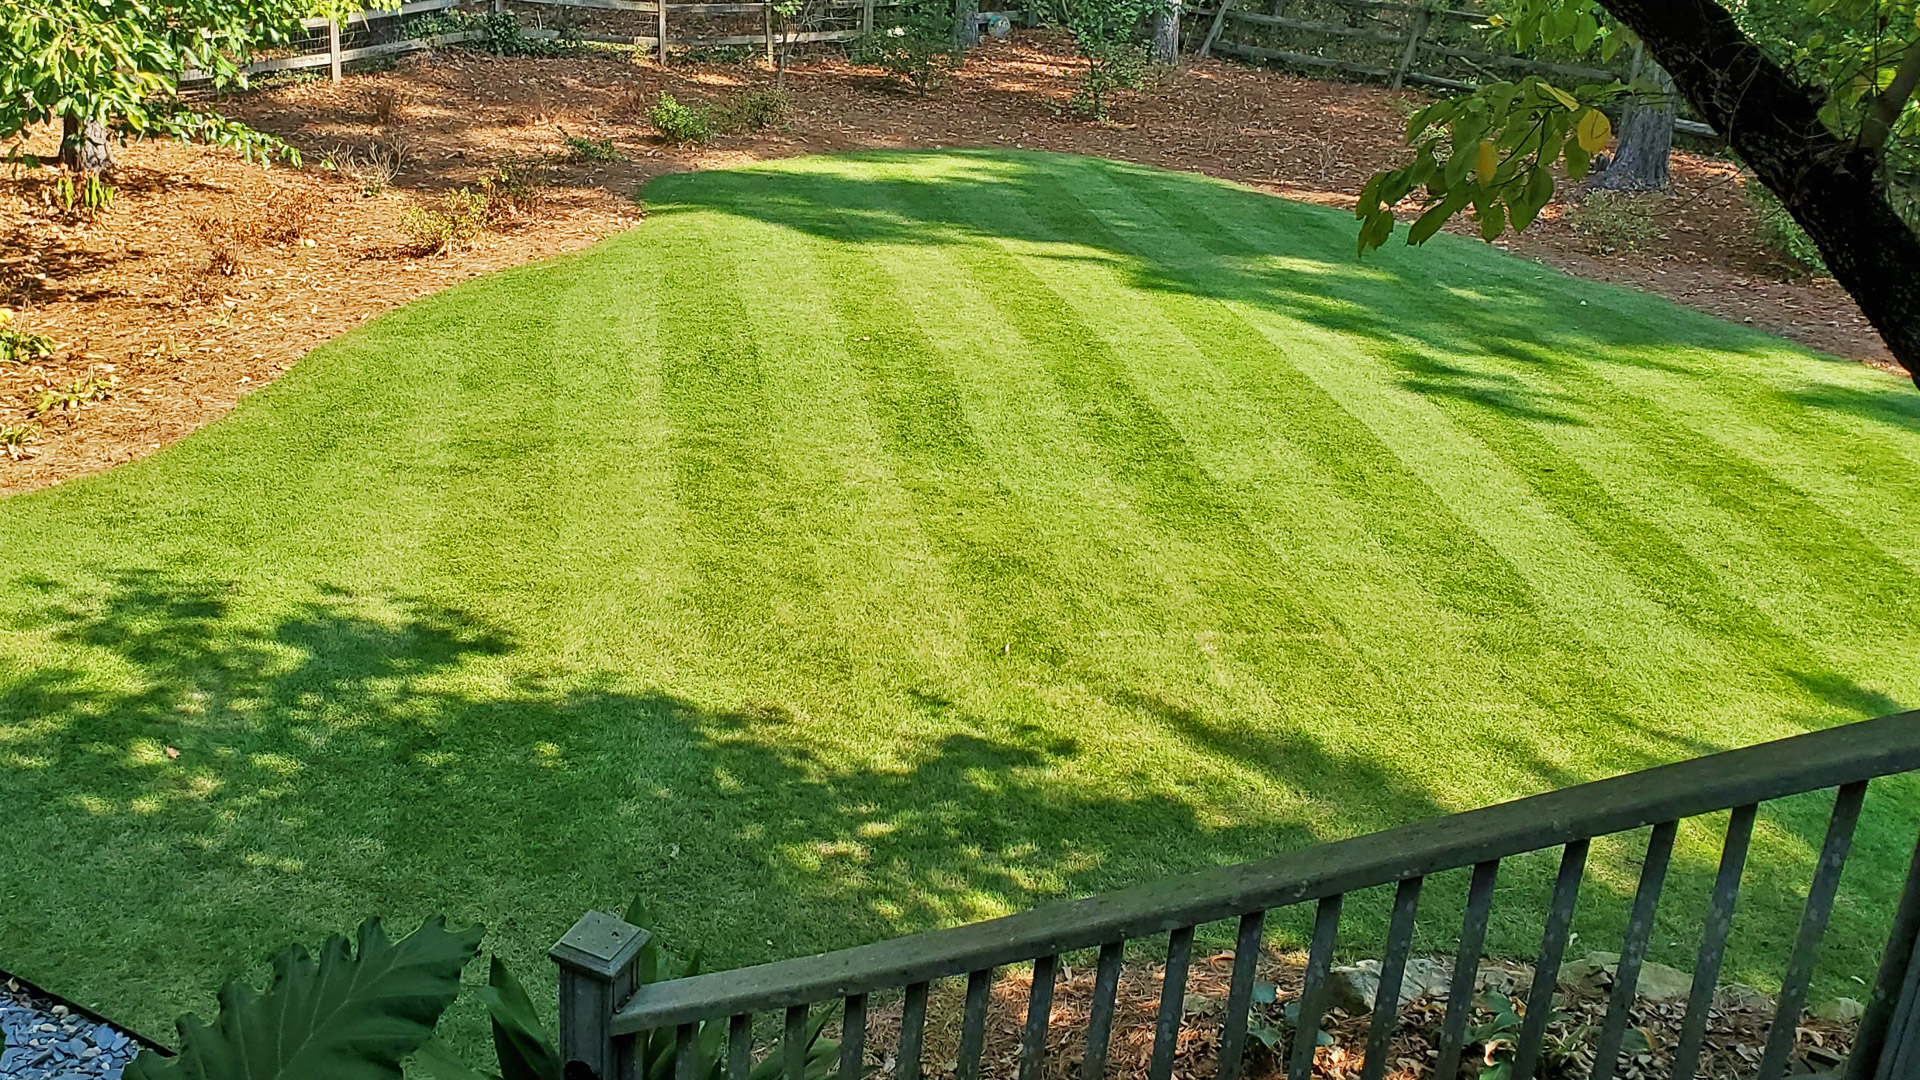 A professionally mowed lawn with lawn striping.